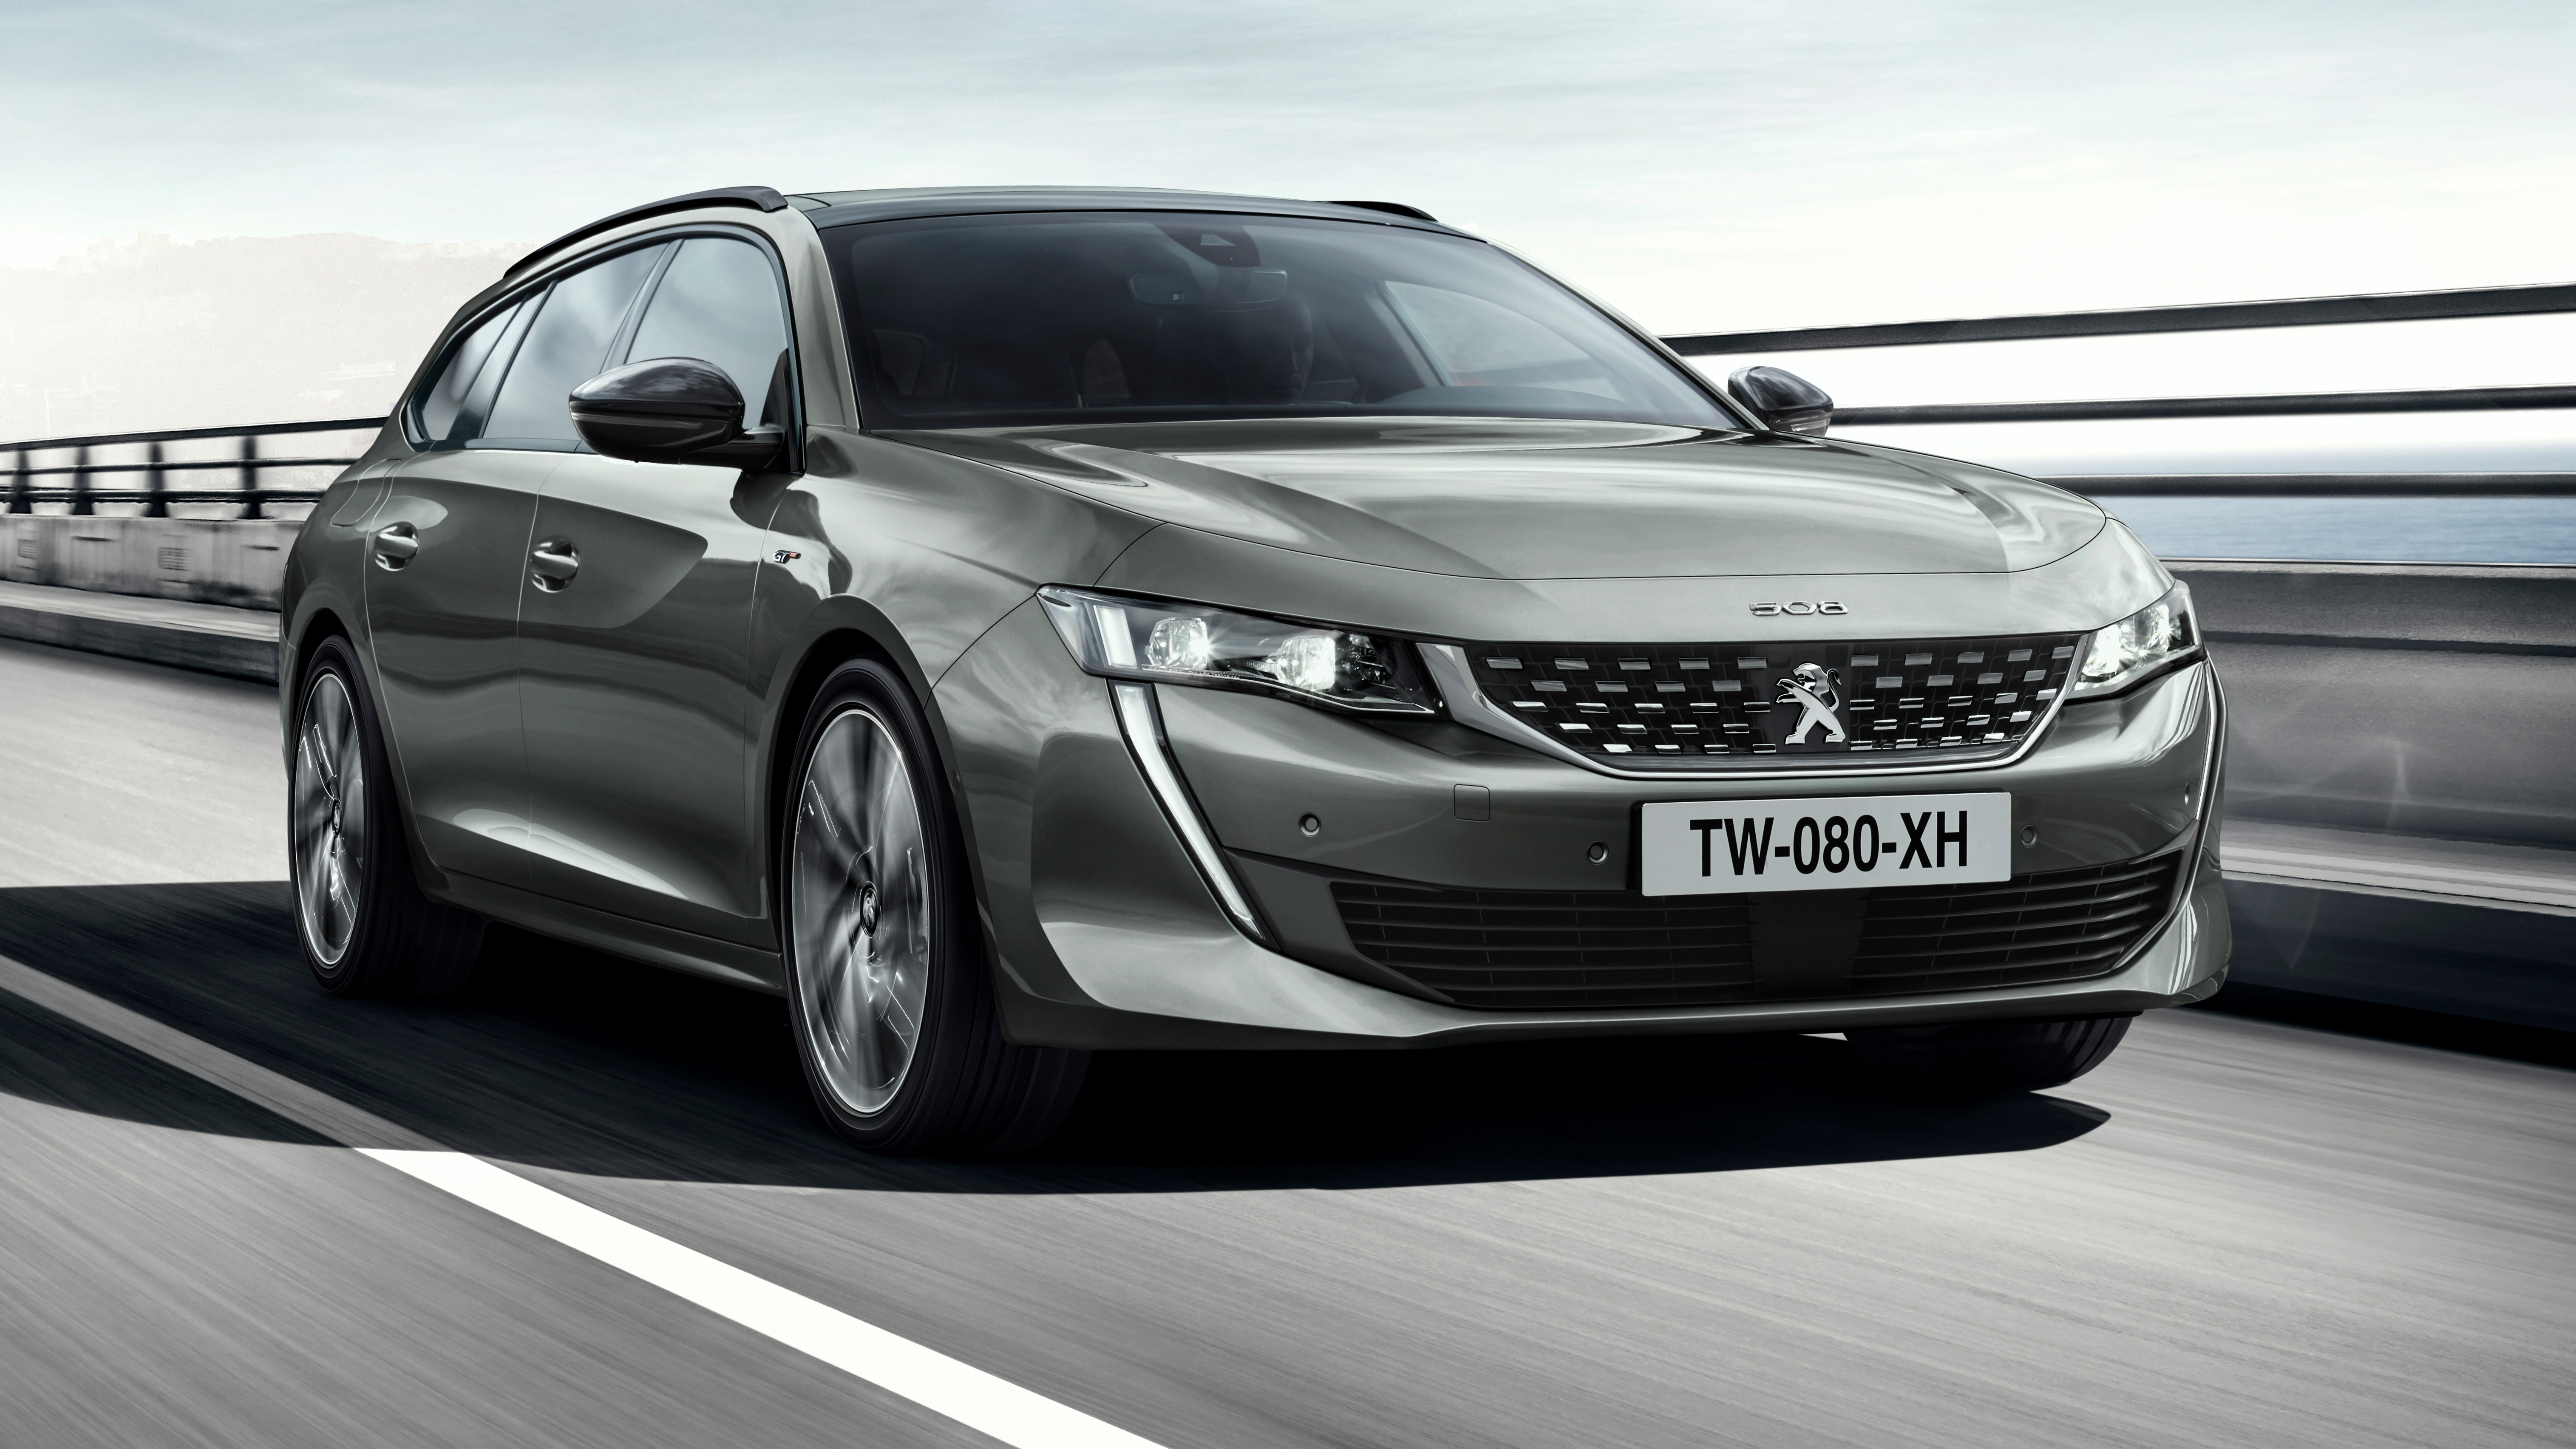 News - 2019 Peugeot 508SW Revealed, Looking Spectacular